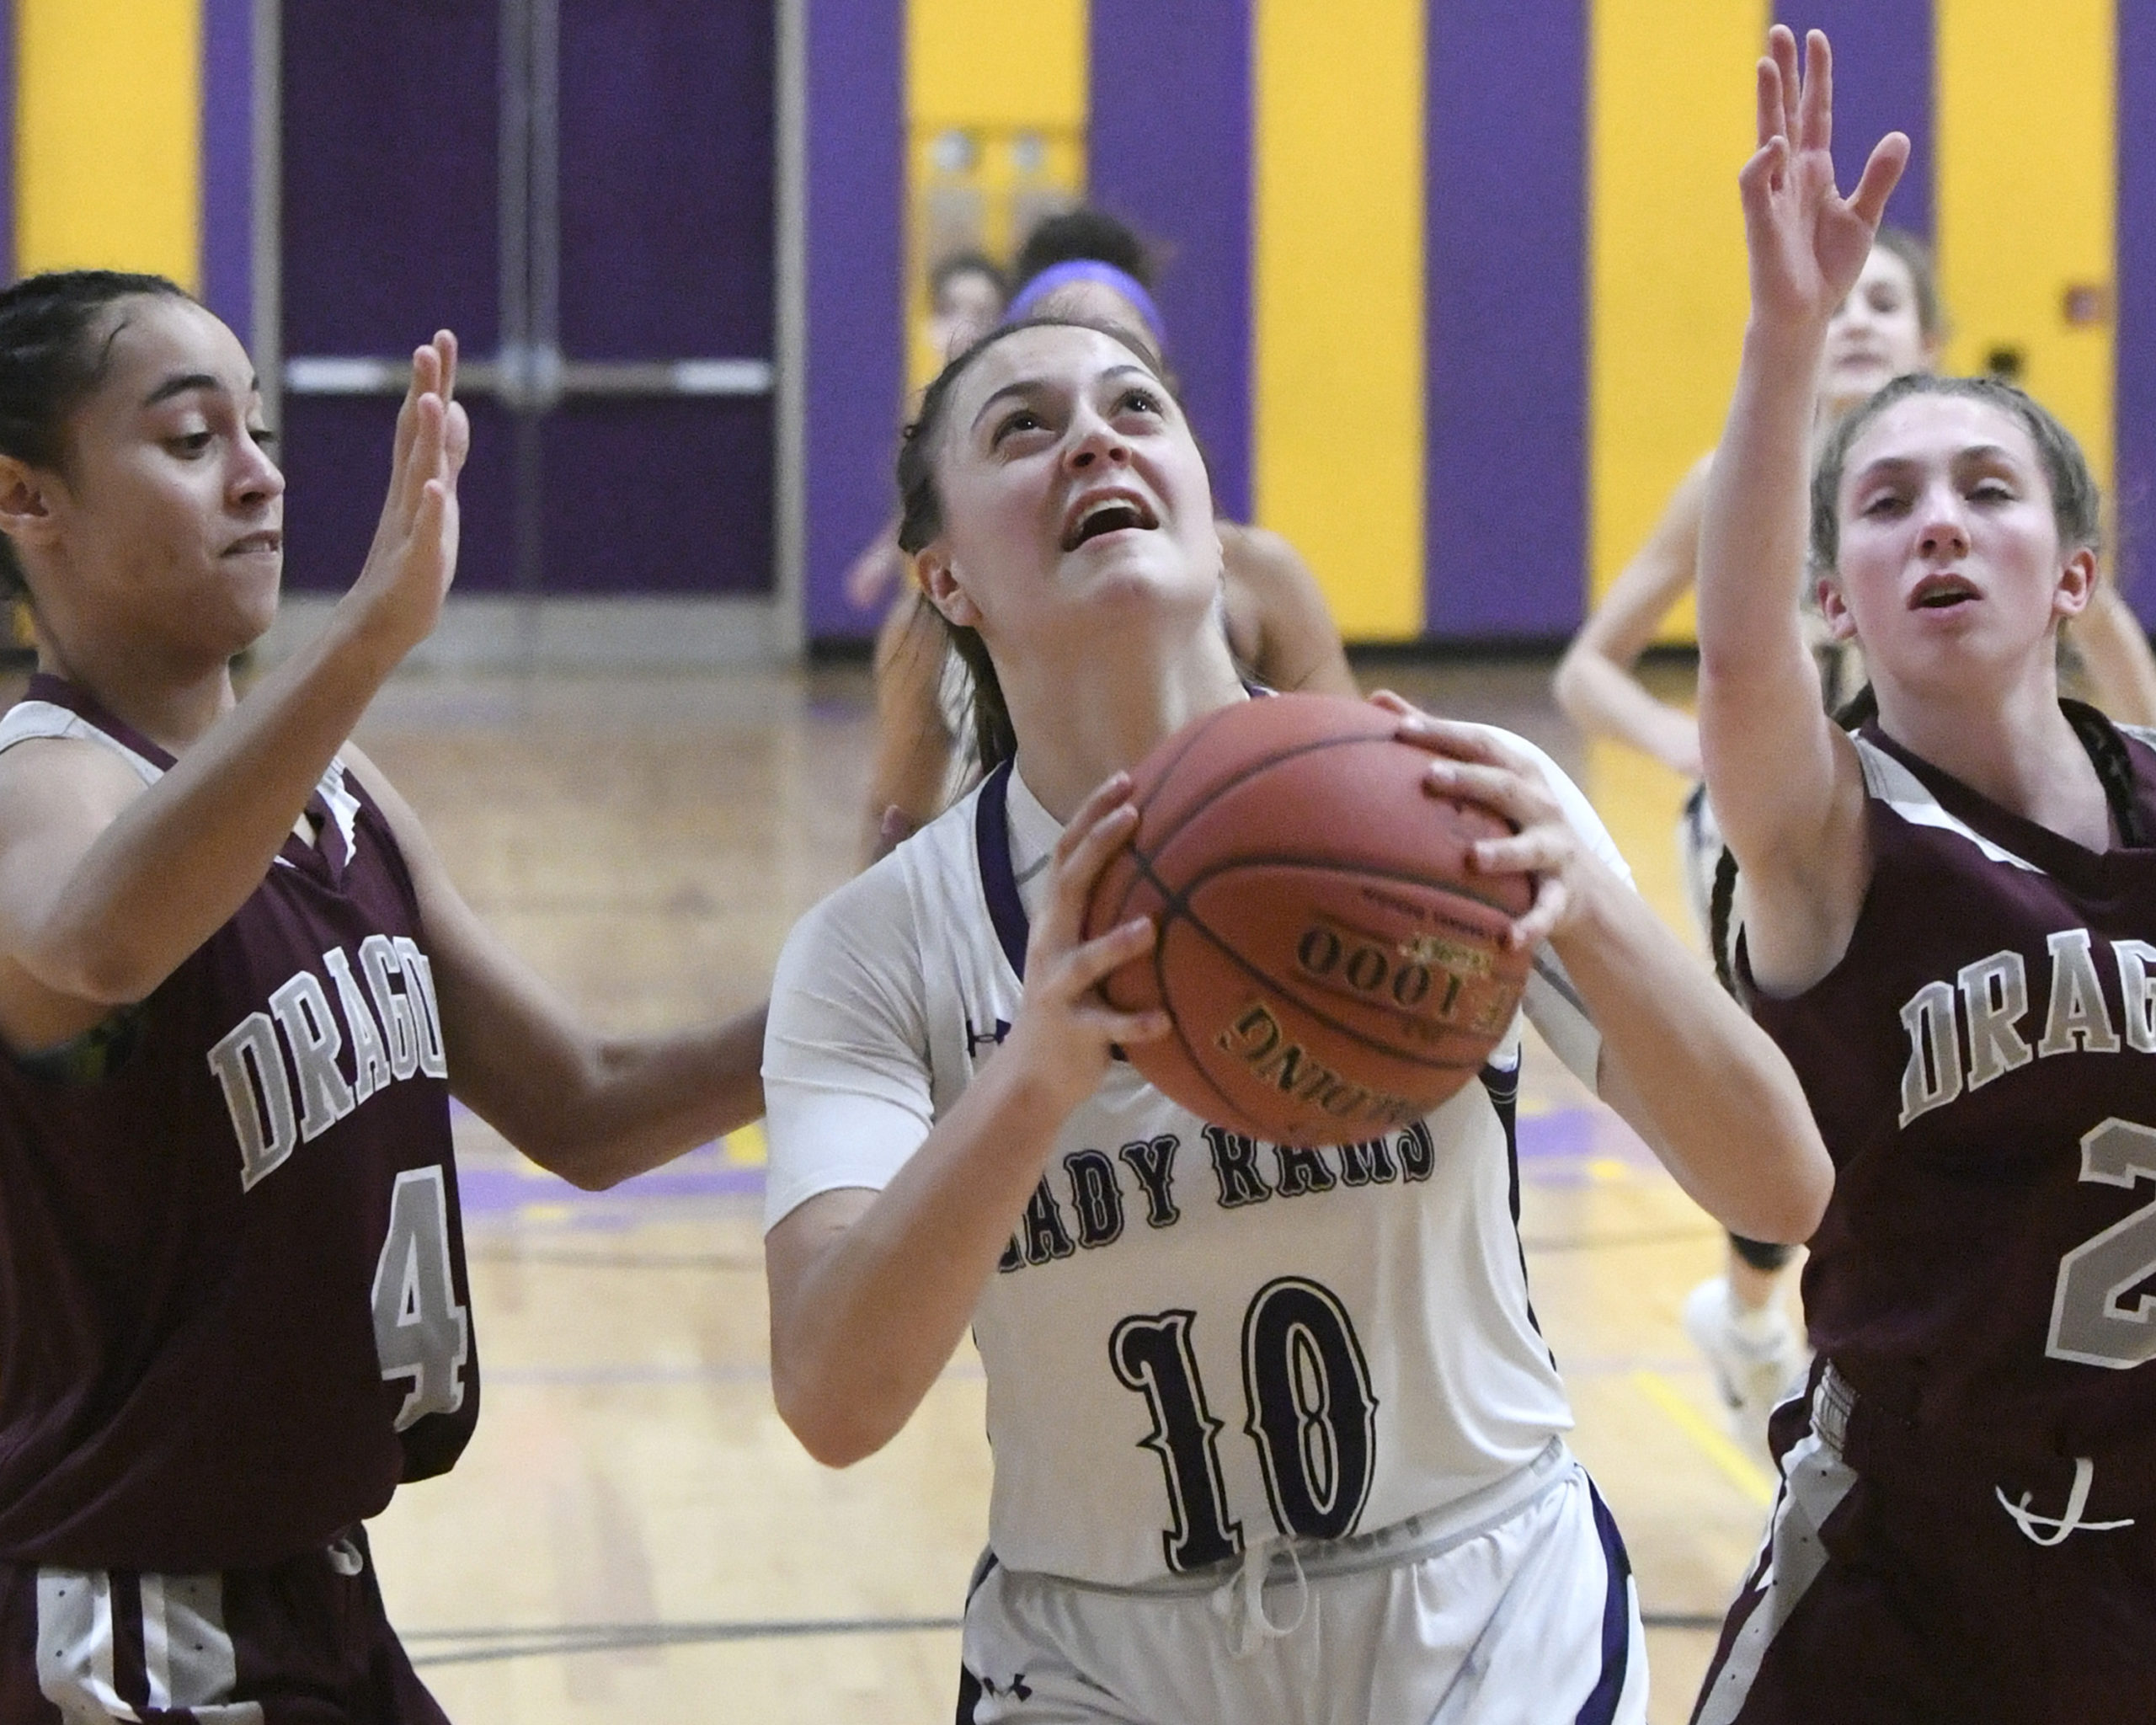 girl holds basketball defended by 2 other players